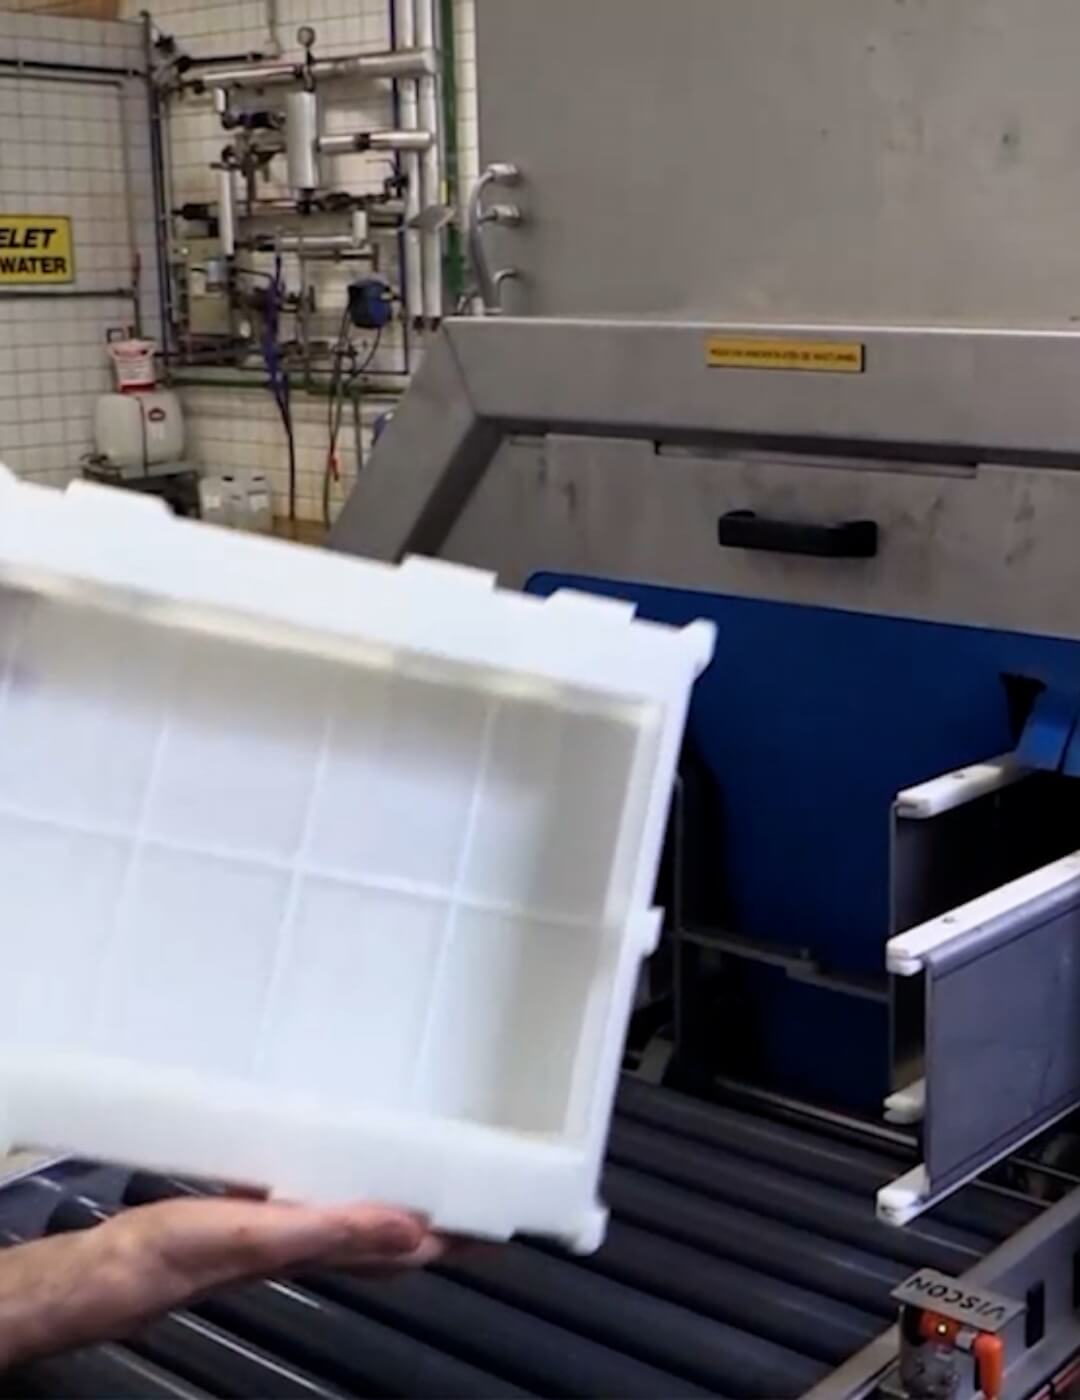 Industrial washer for cleaning and drying moulds